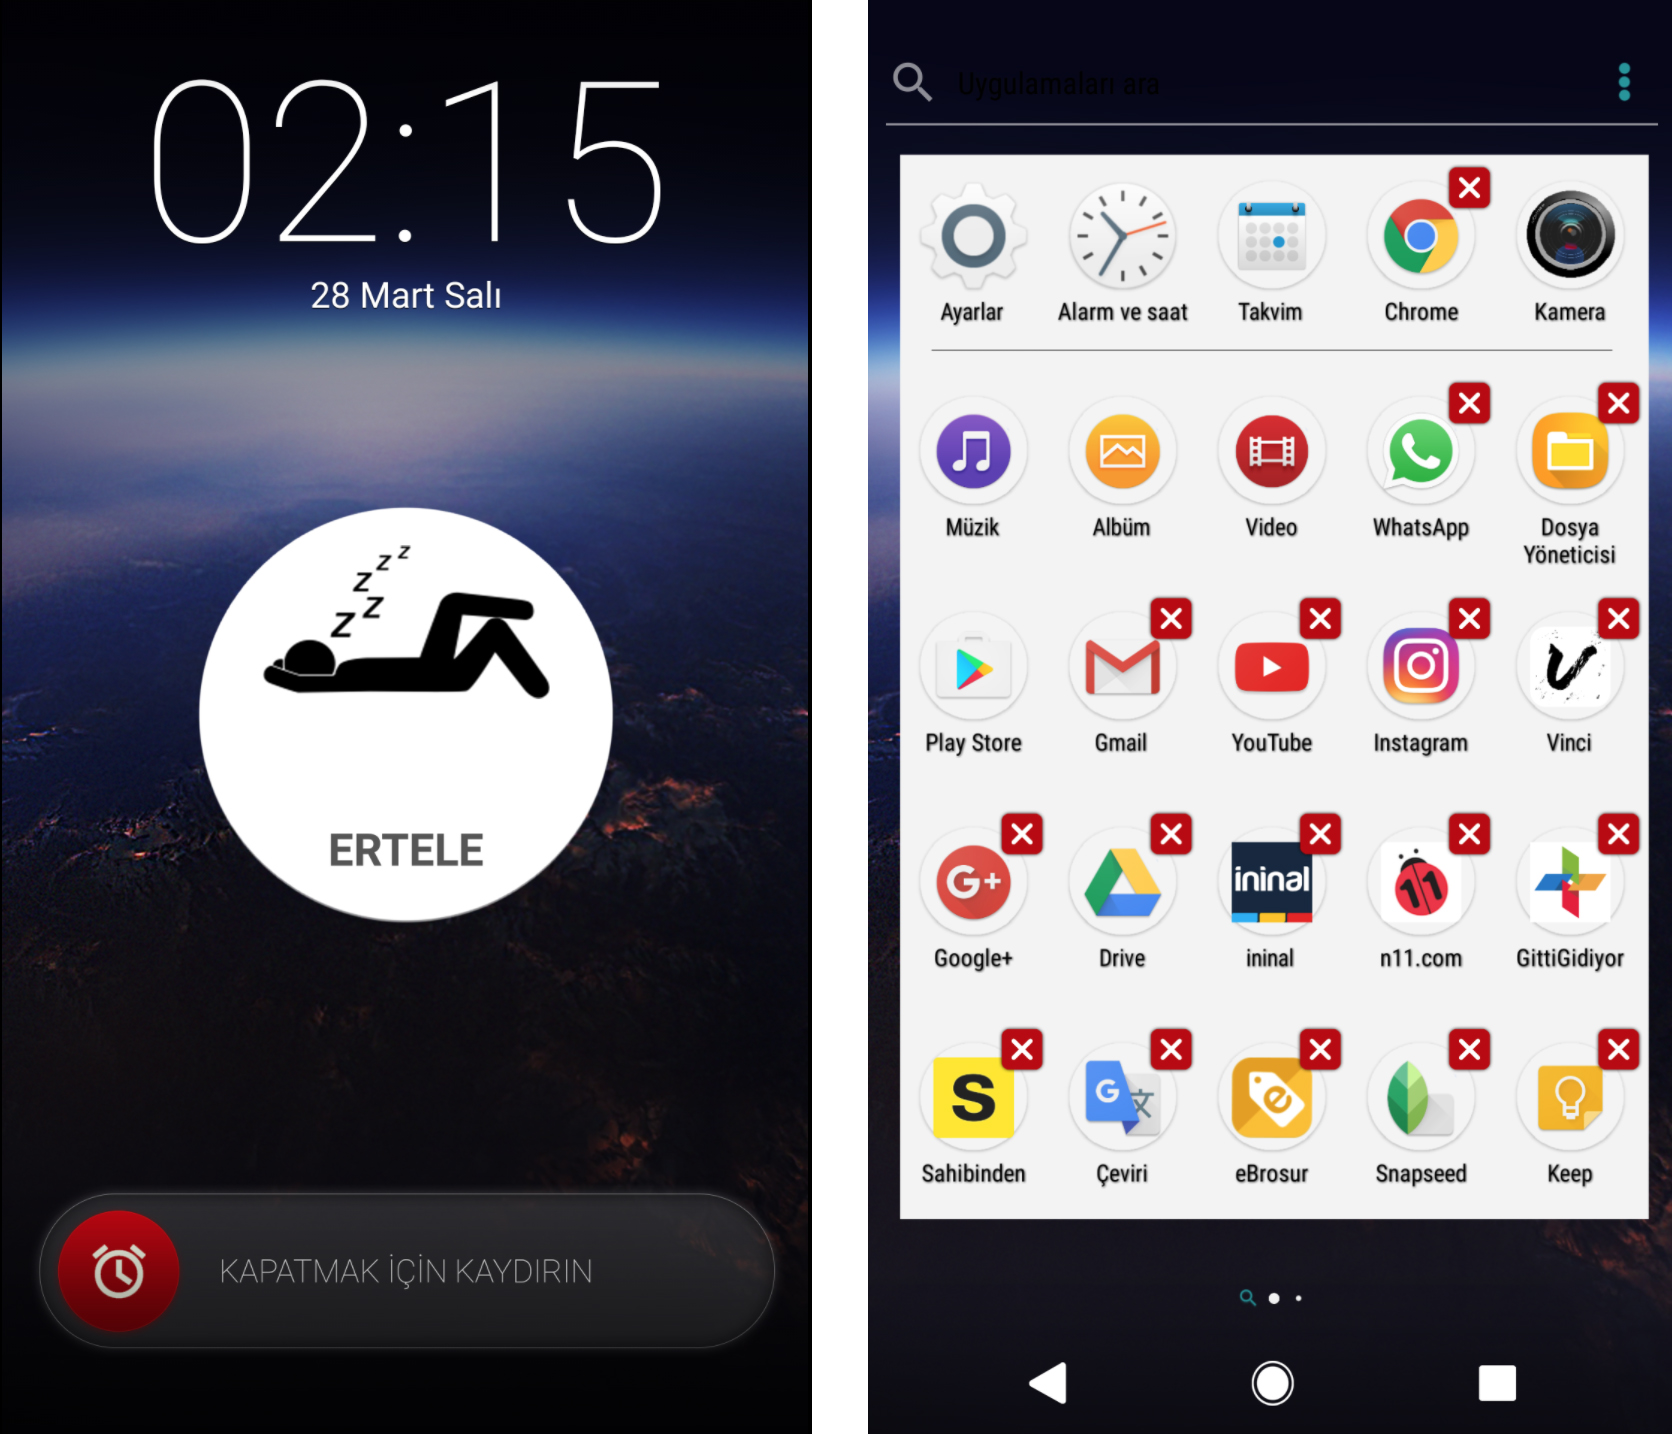 Themes for gmail on android - Check Out More Sony Xperia Themes Here